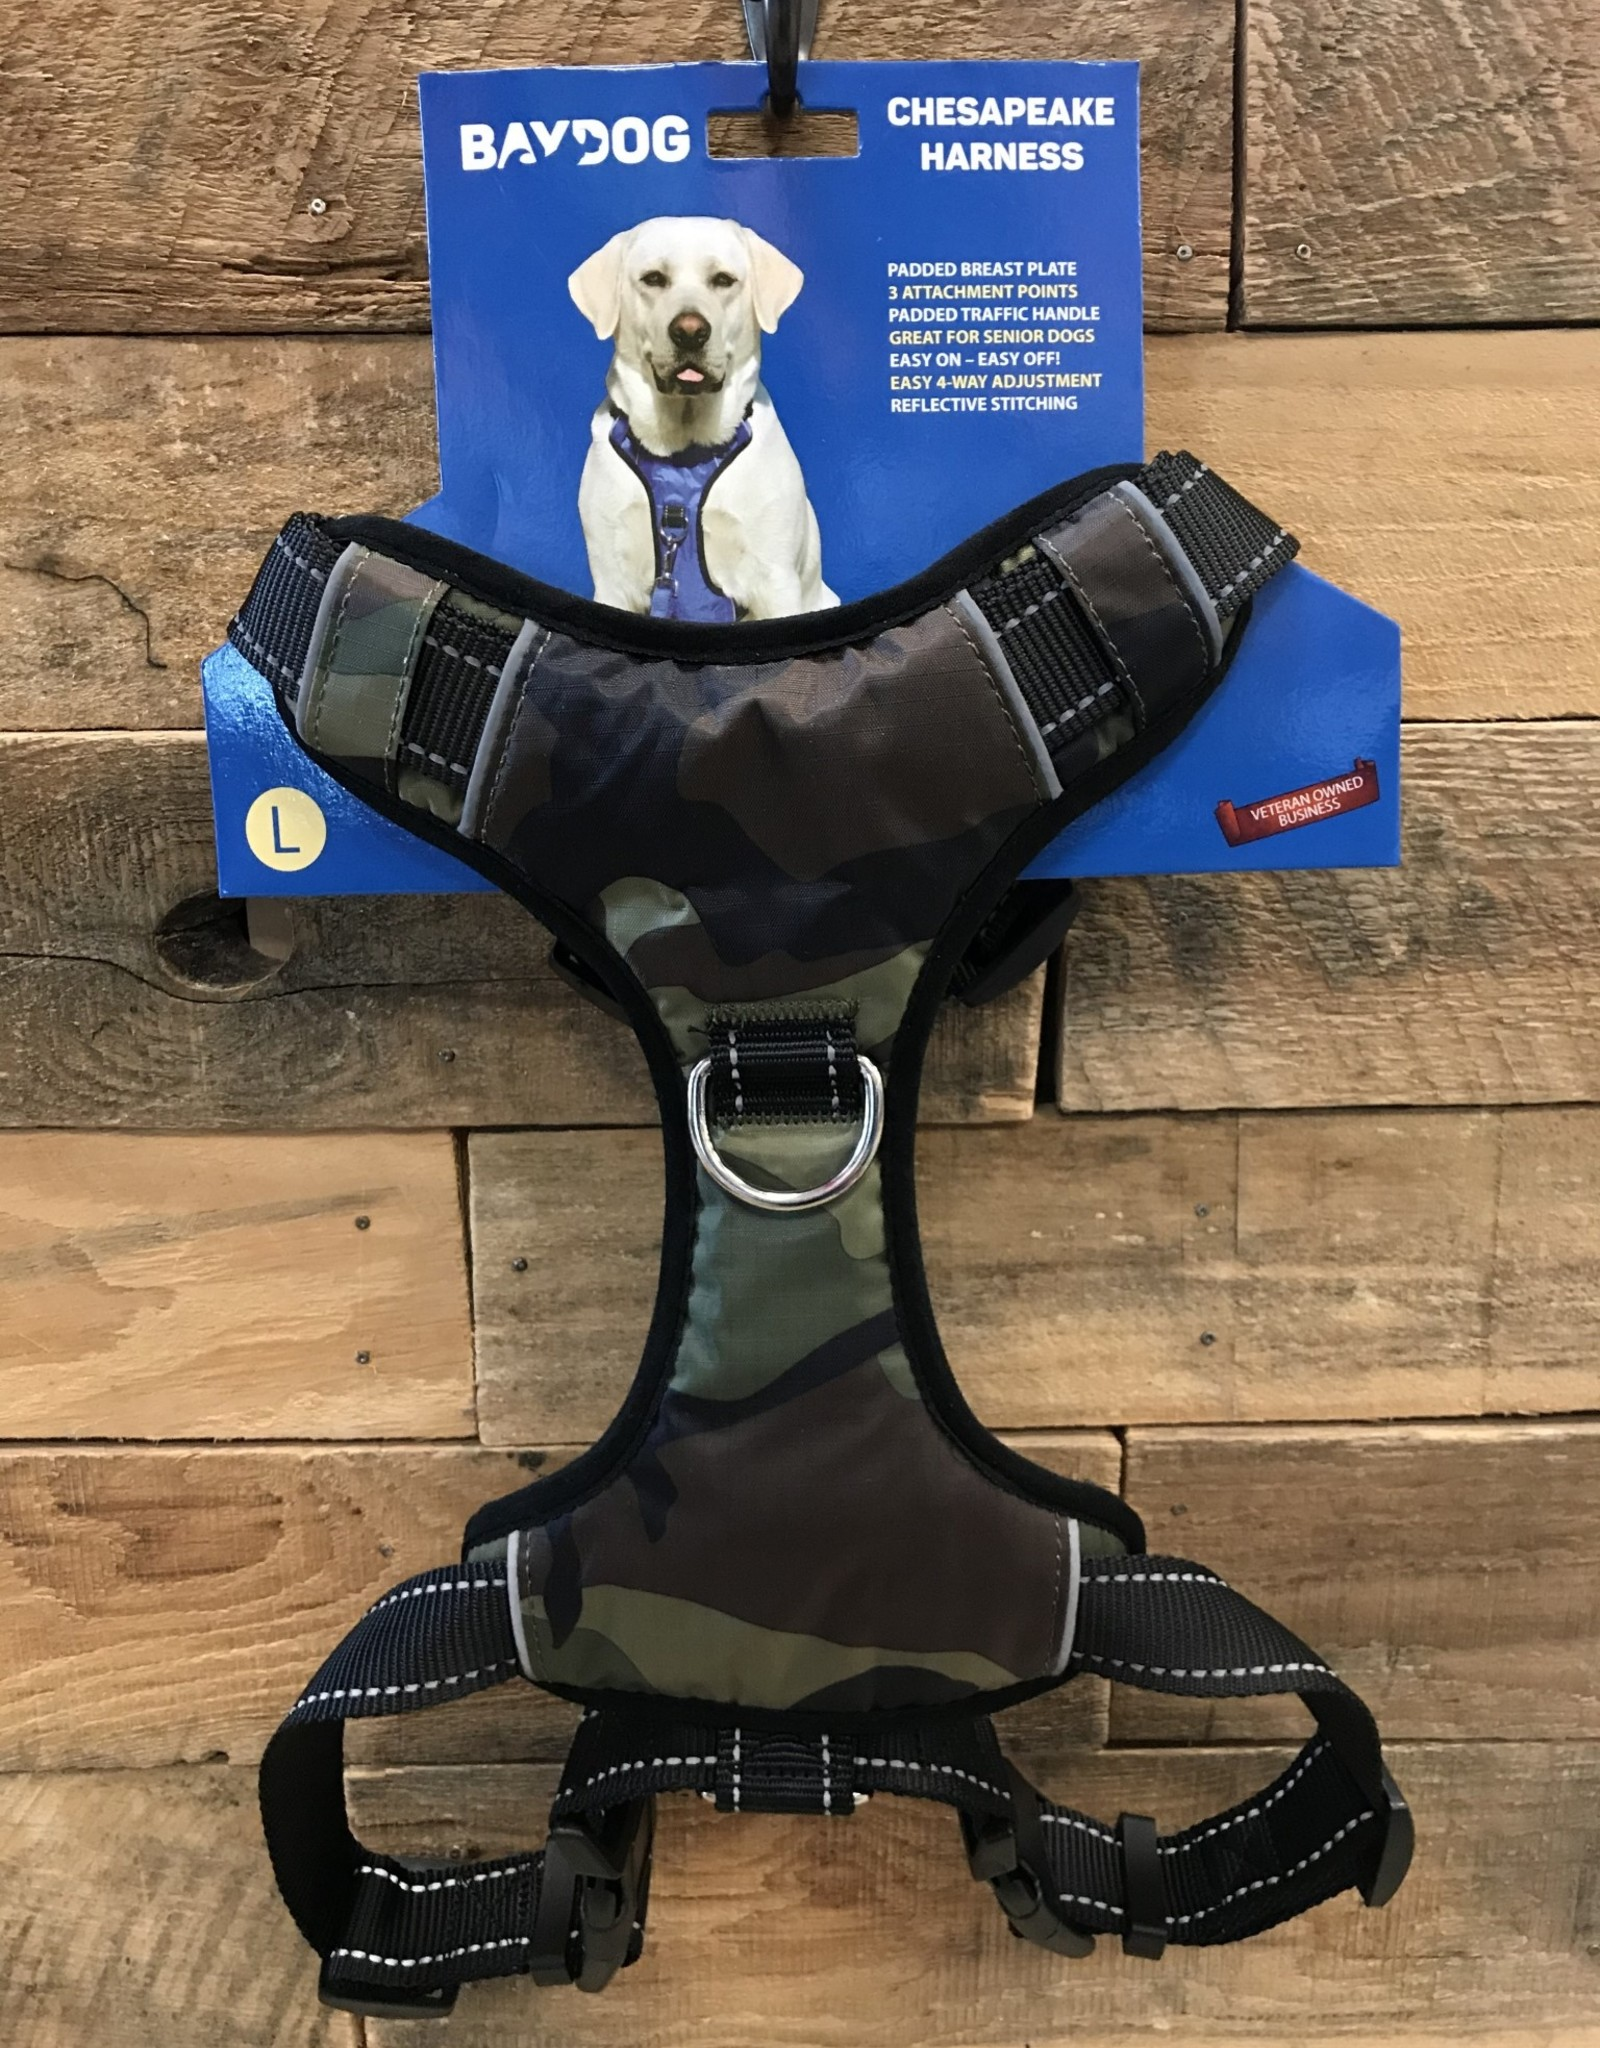 Baydog Baydog Large Chesapeake Harness